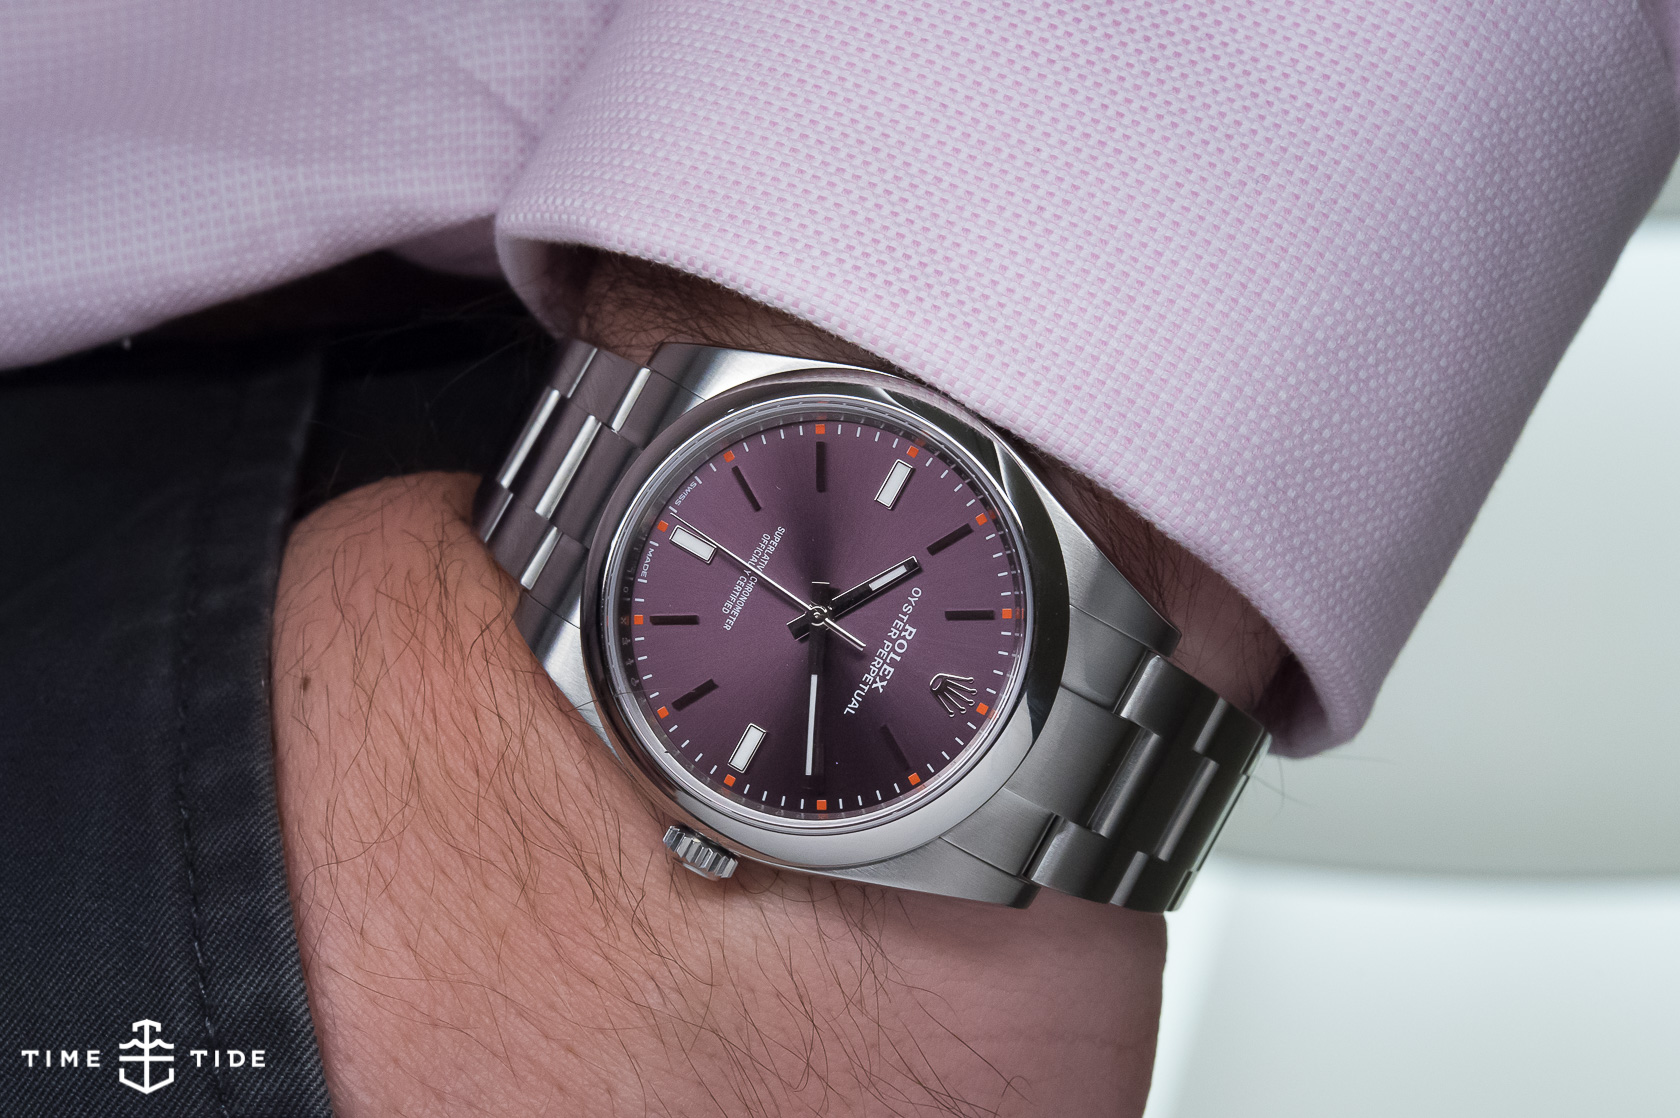 Rolex Oyster Perpetual 39 Ref 114300 In Depth Review